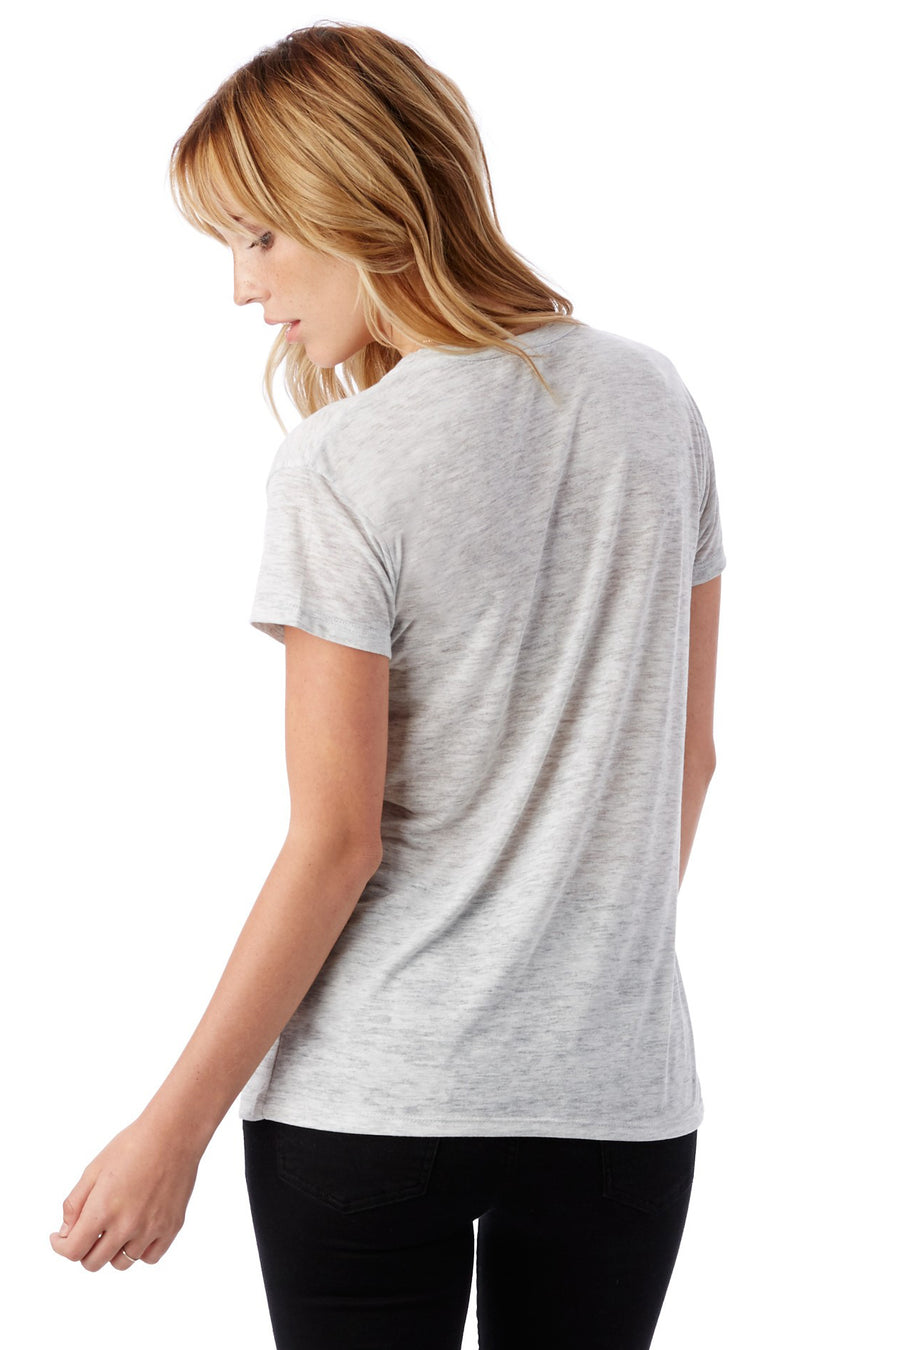 Kimber Tee - Oatmeal Heather - Pavilion